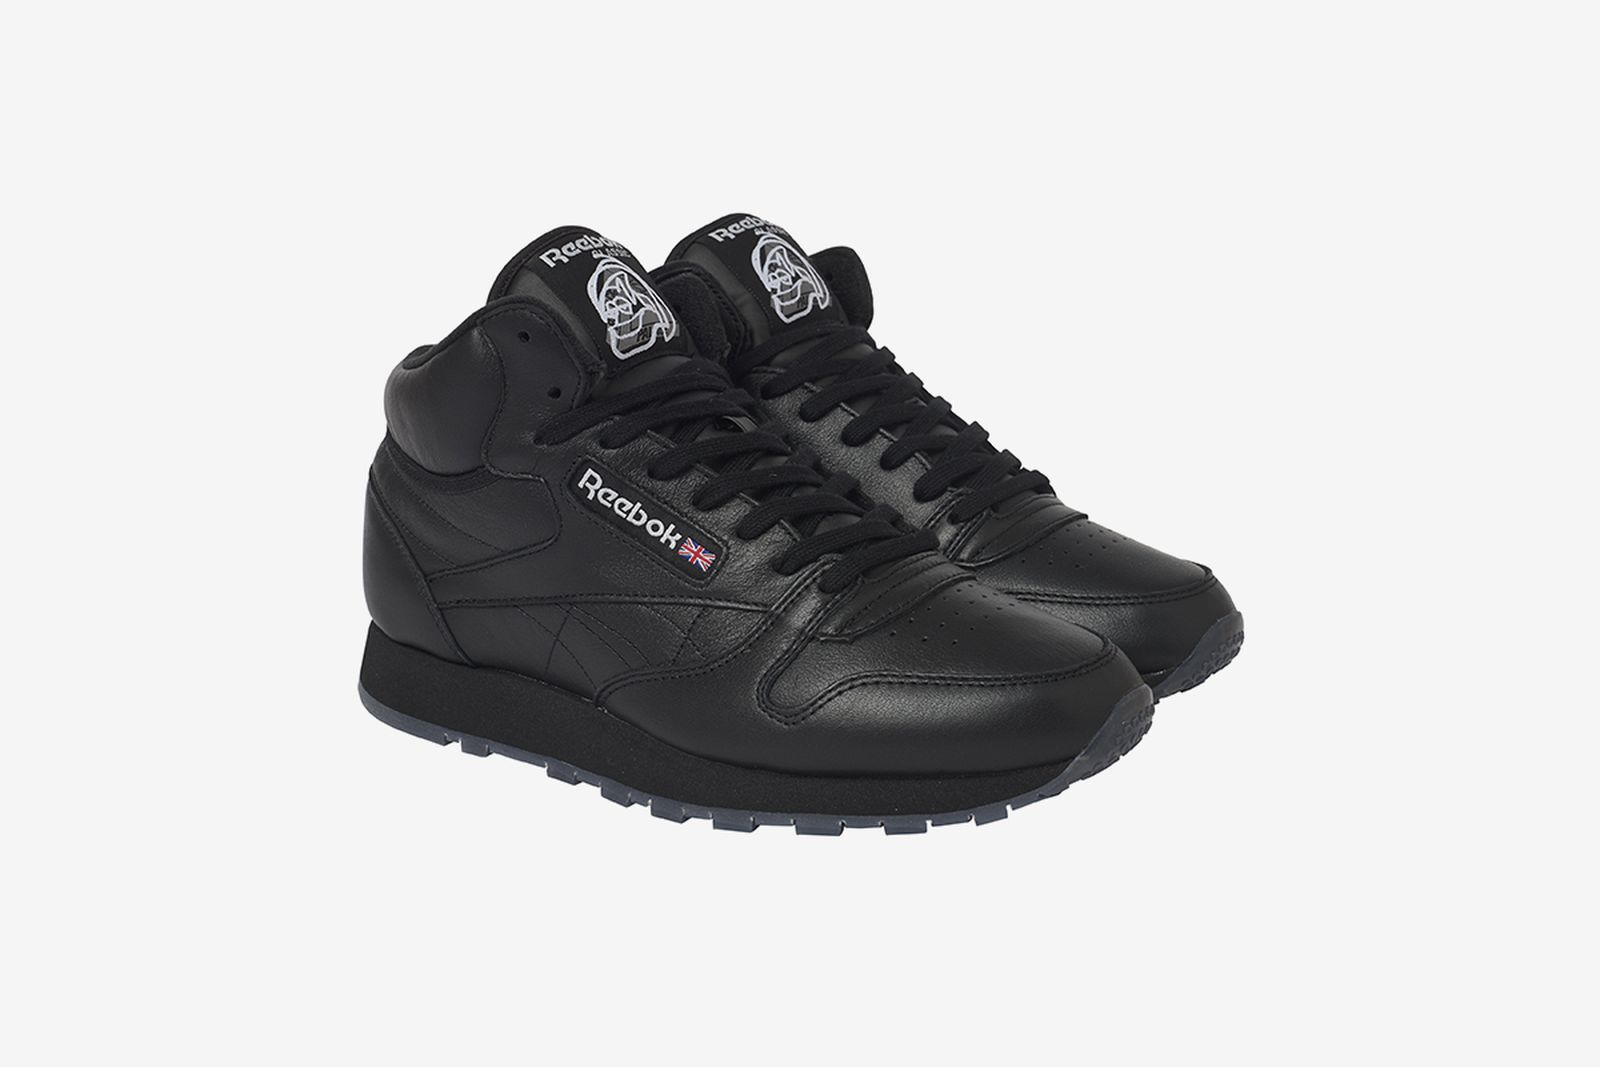 Palace x Reebok JK Workout Mid black